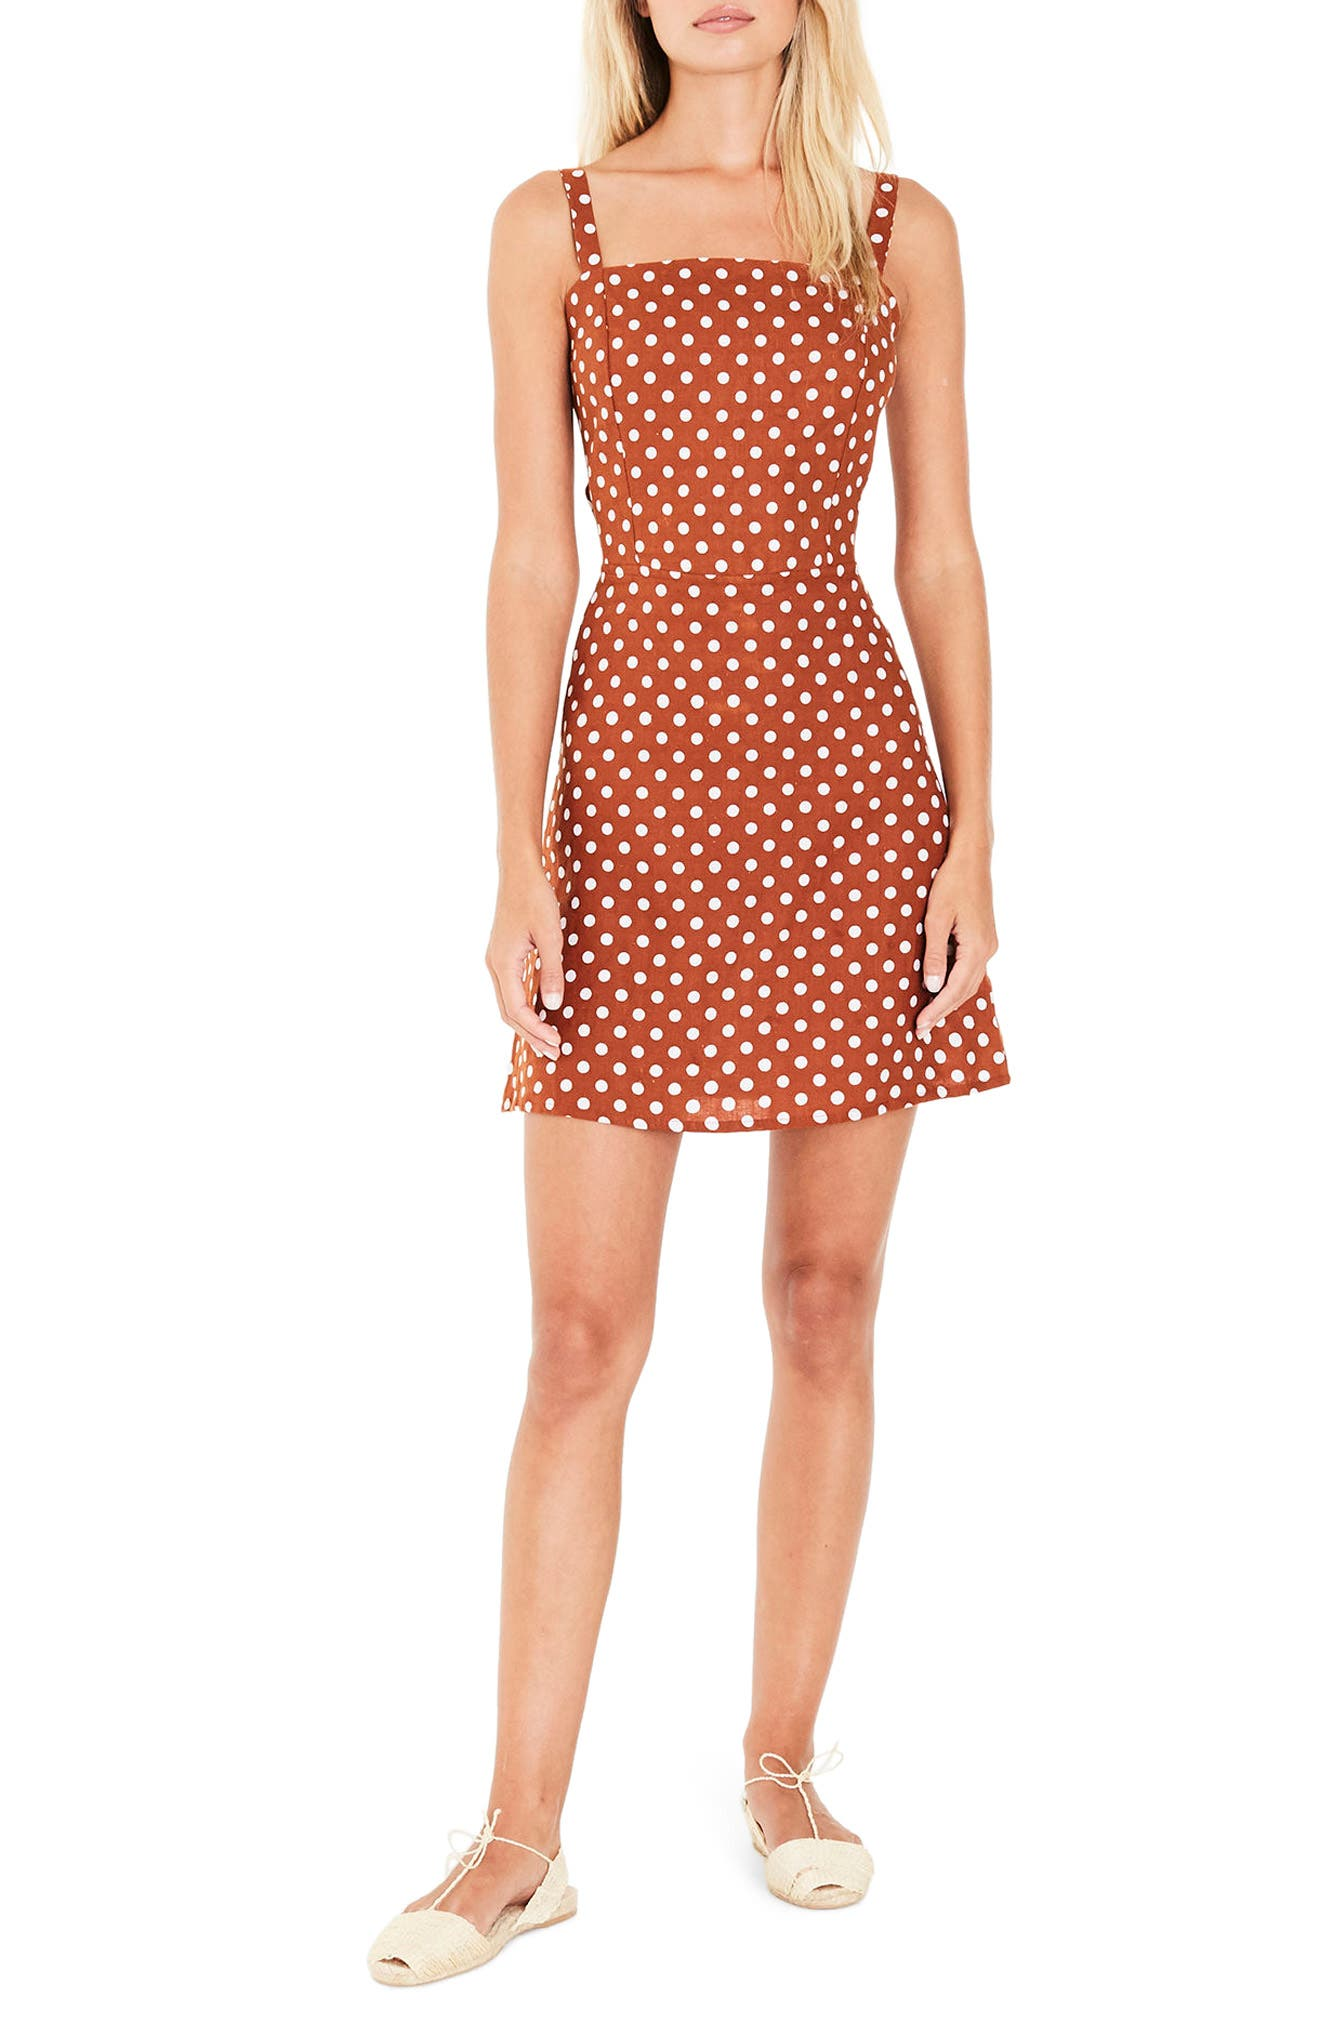 FAITHFULL THE BRAND Stepper Polka Dot Sundress